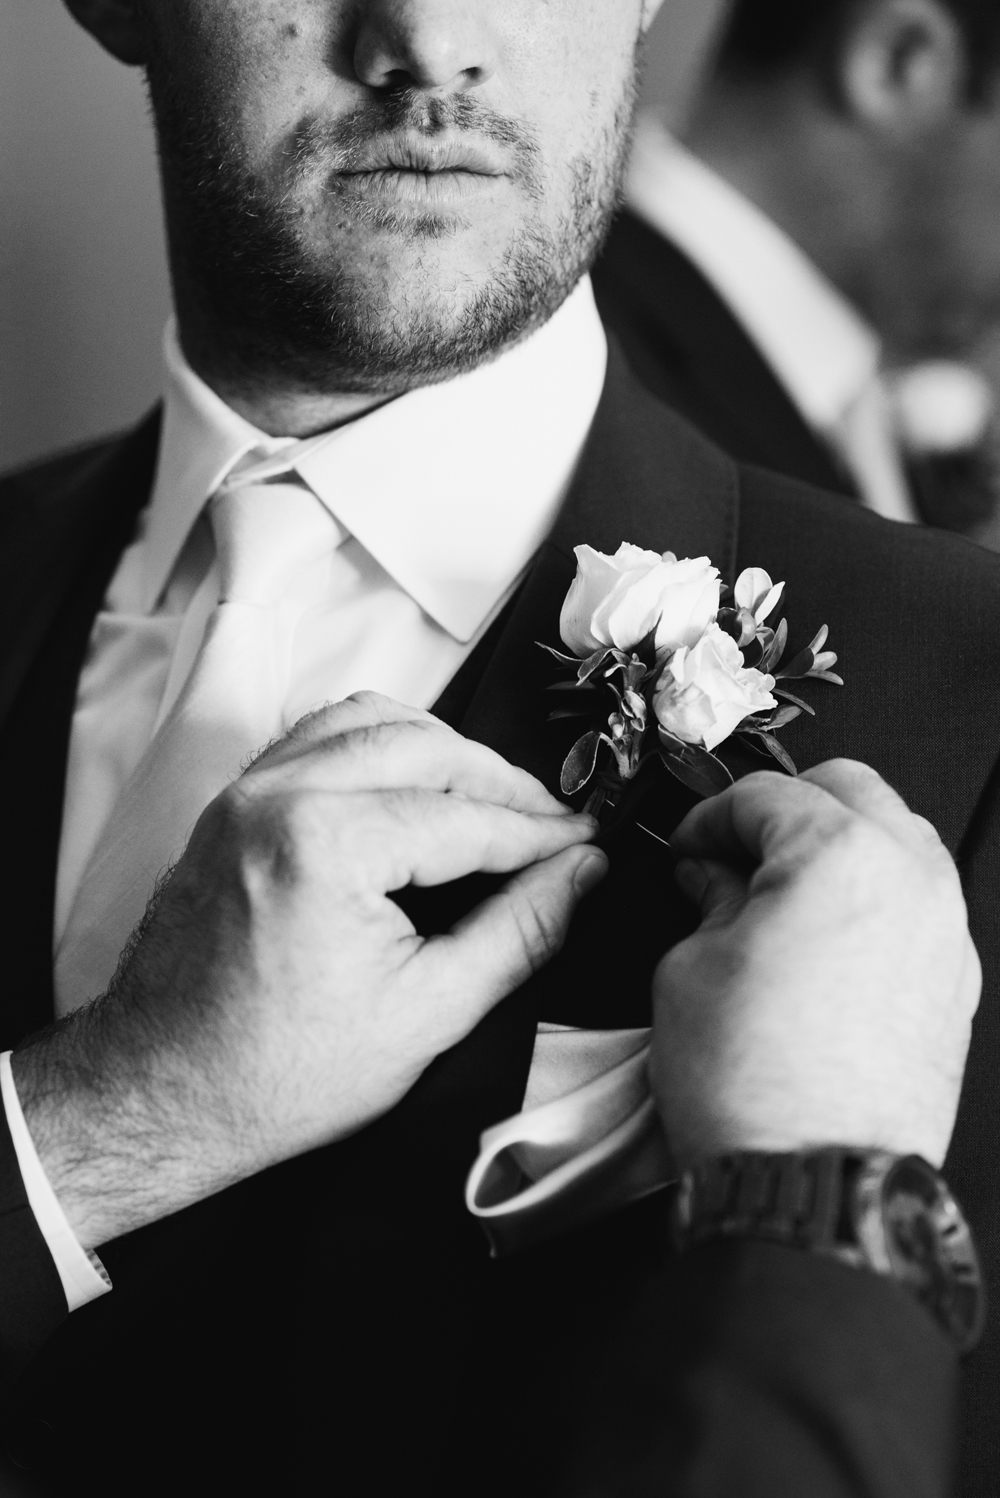 Groom puts on buttonhole flower